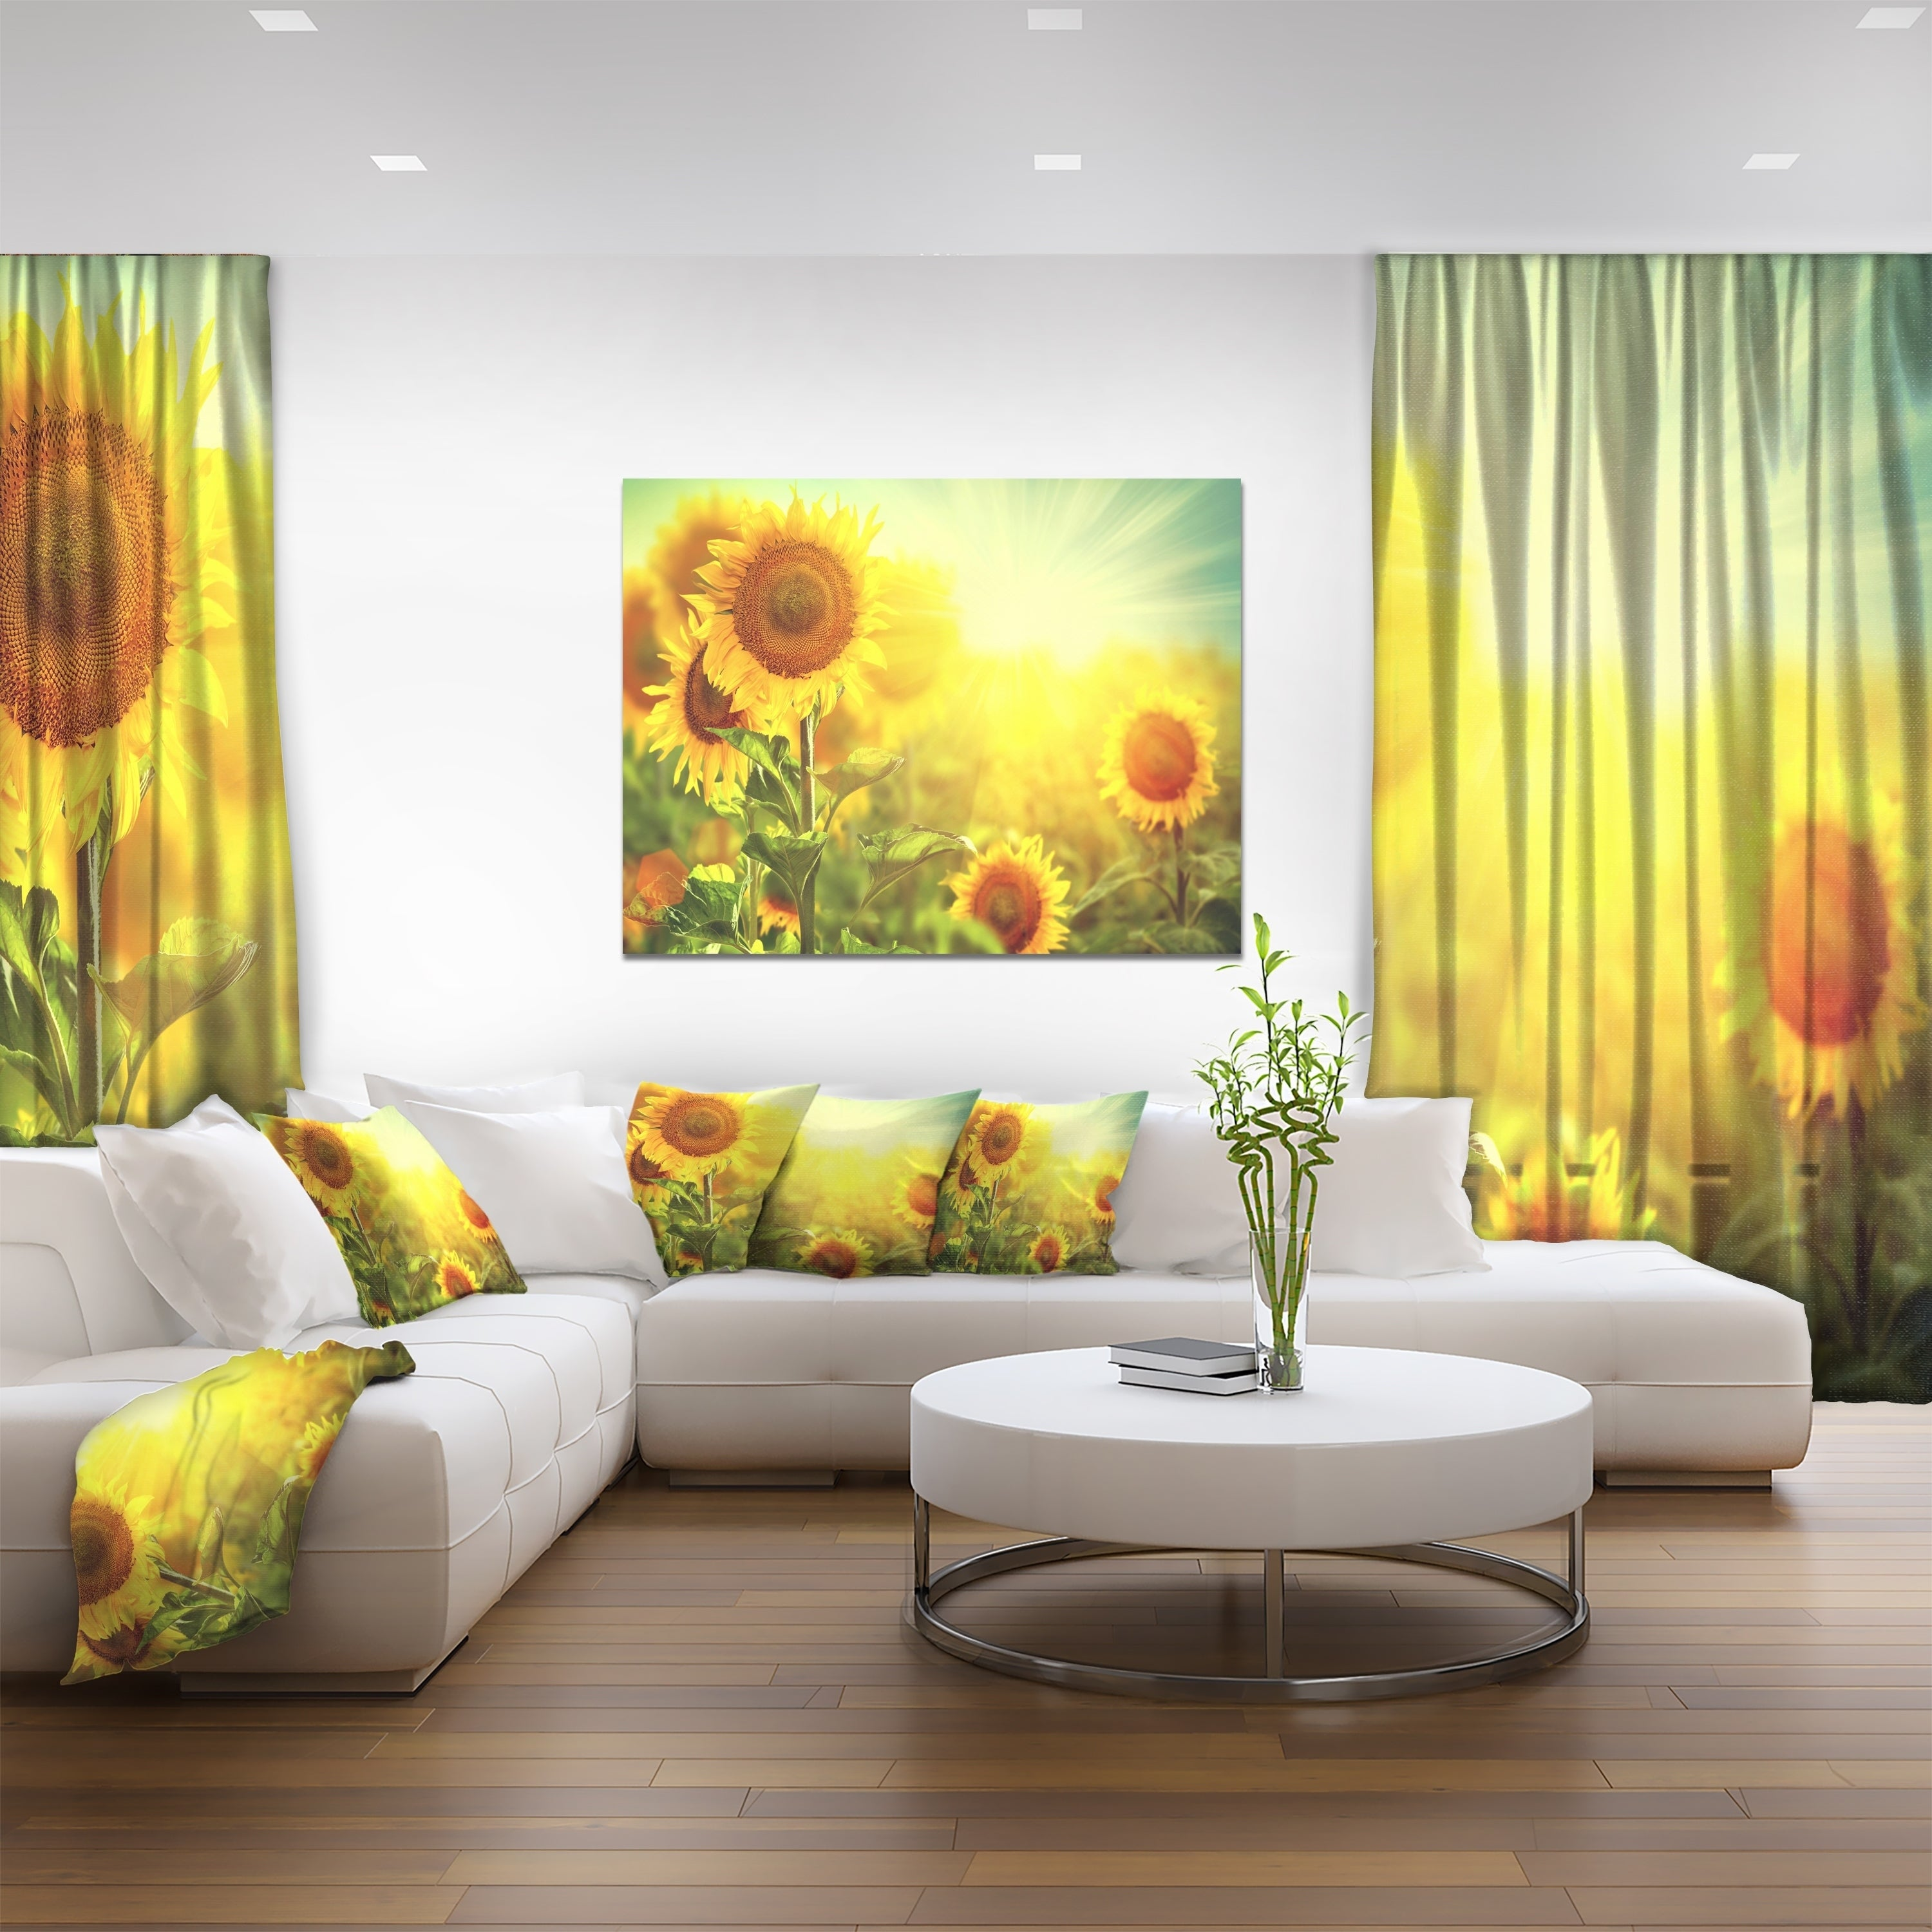 Old Fashioned Big Wall Art Pictures Gallery - The Wall Art ...